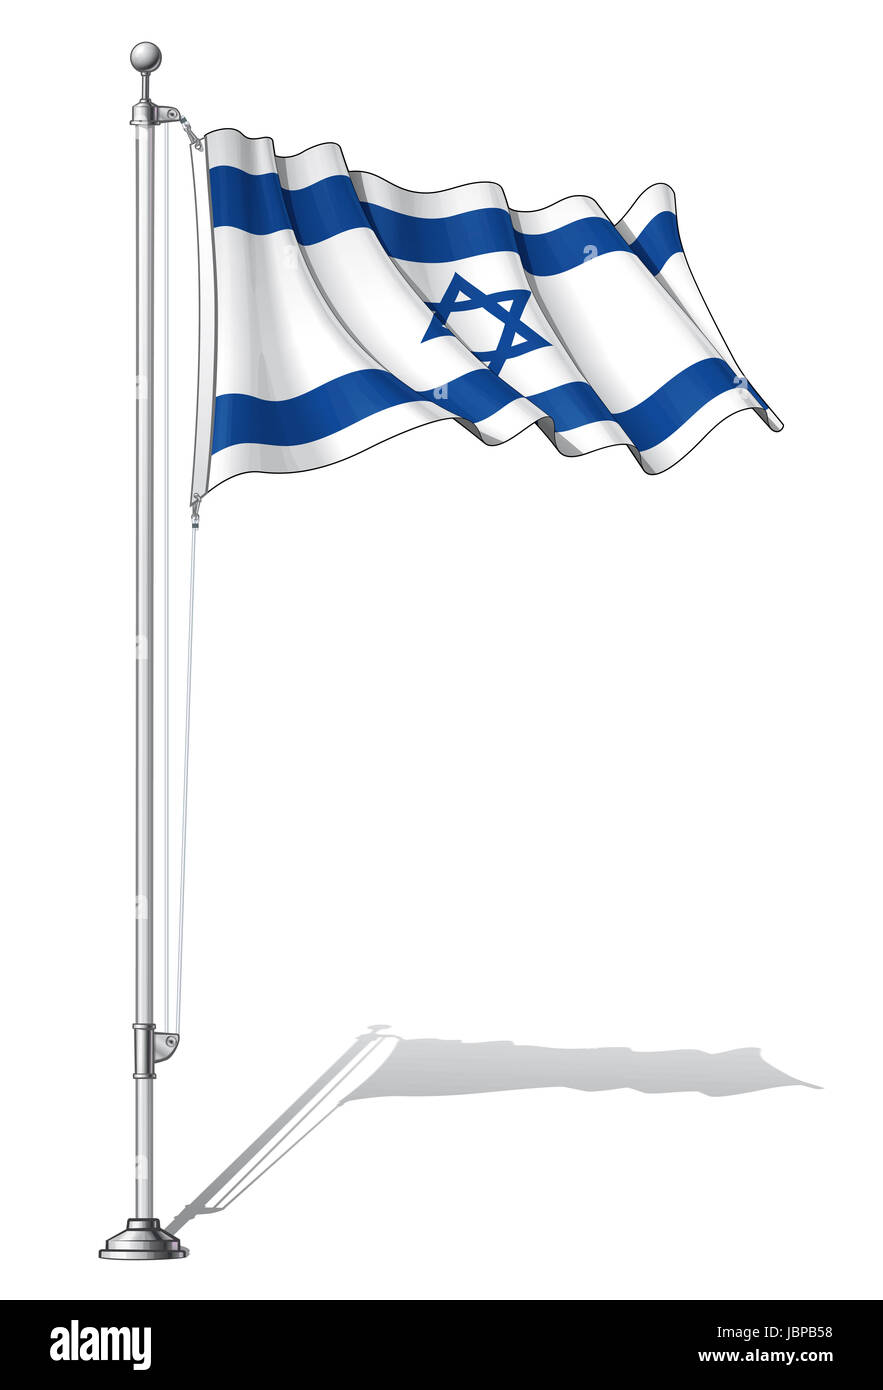 Vector Illustration of a waving Israeli flag fasten on a flag pole. Flag and pole in separate layers, line art, - Stock Image